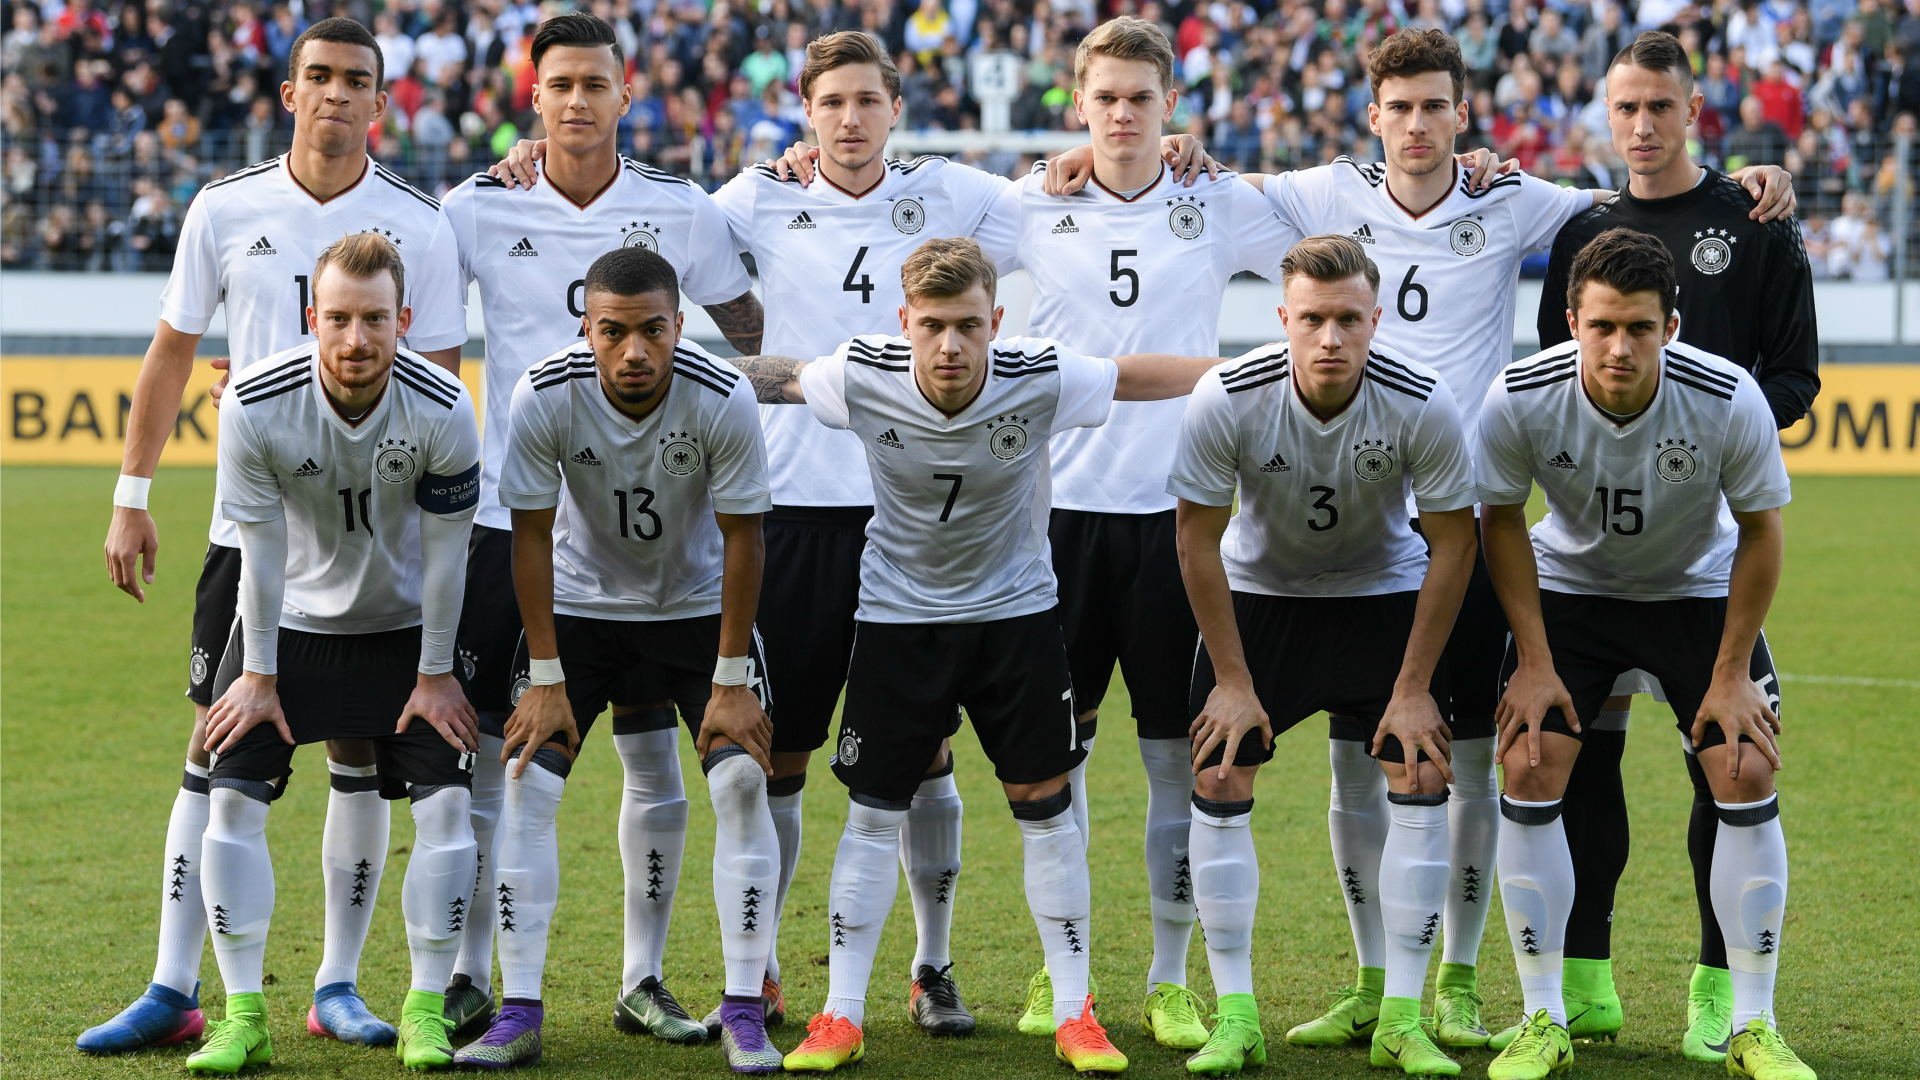 Germany routs San Marino to stay flawless in WCup qualifying